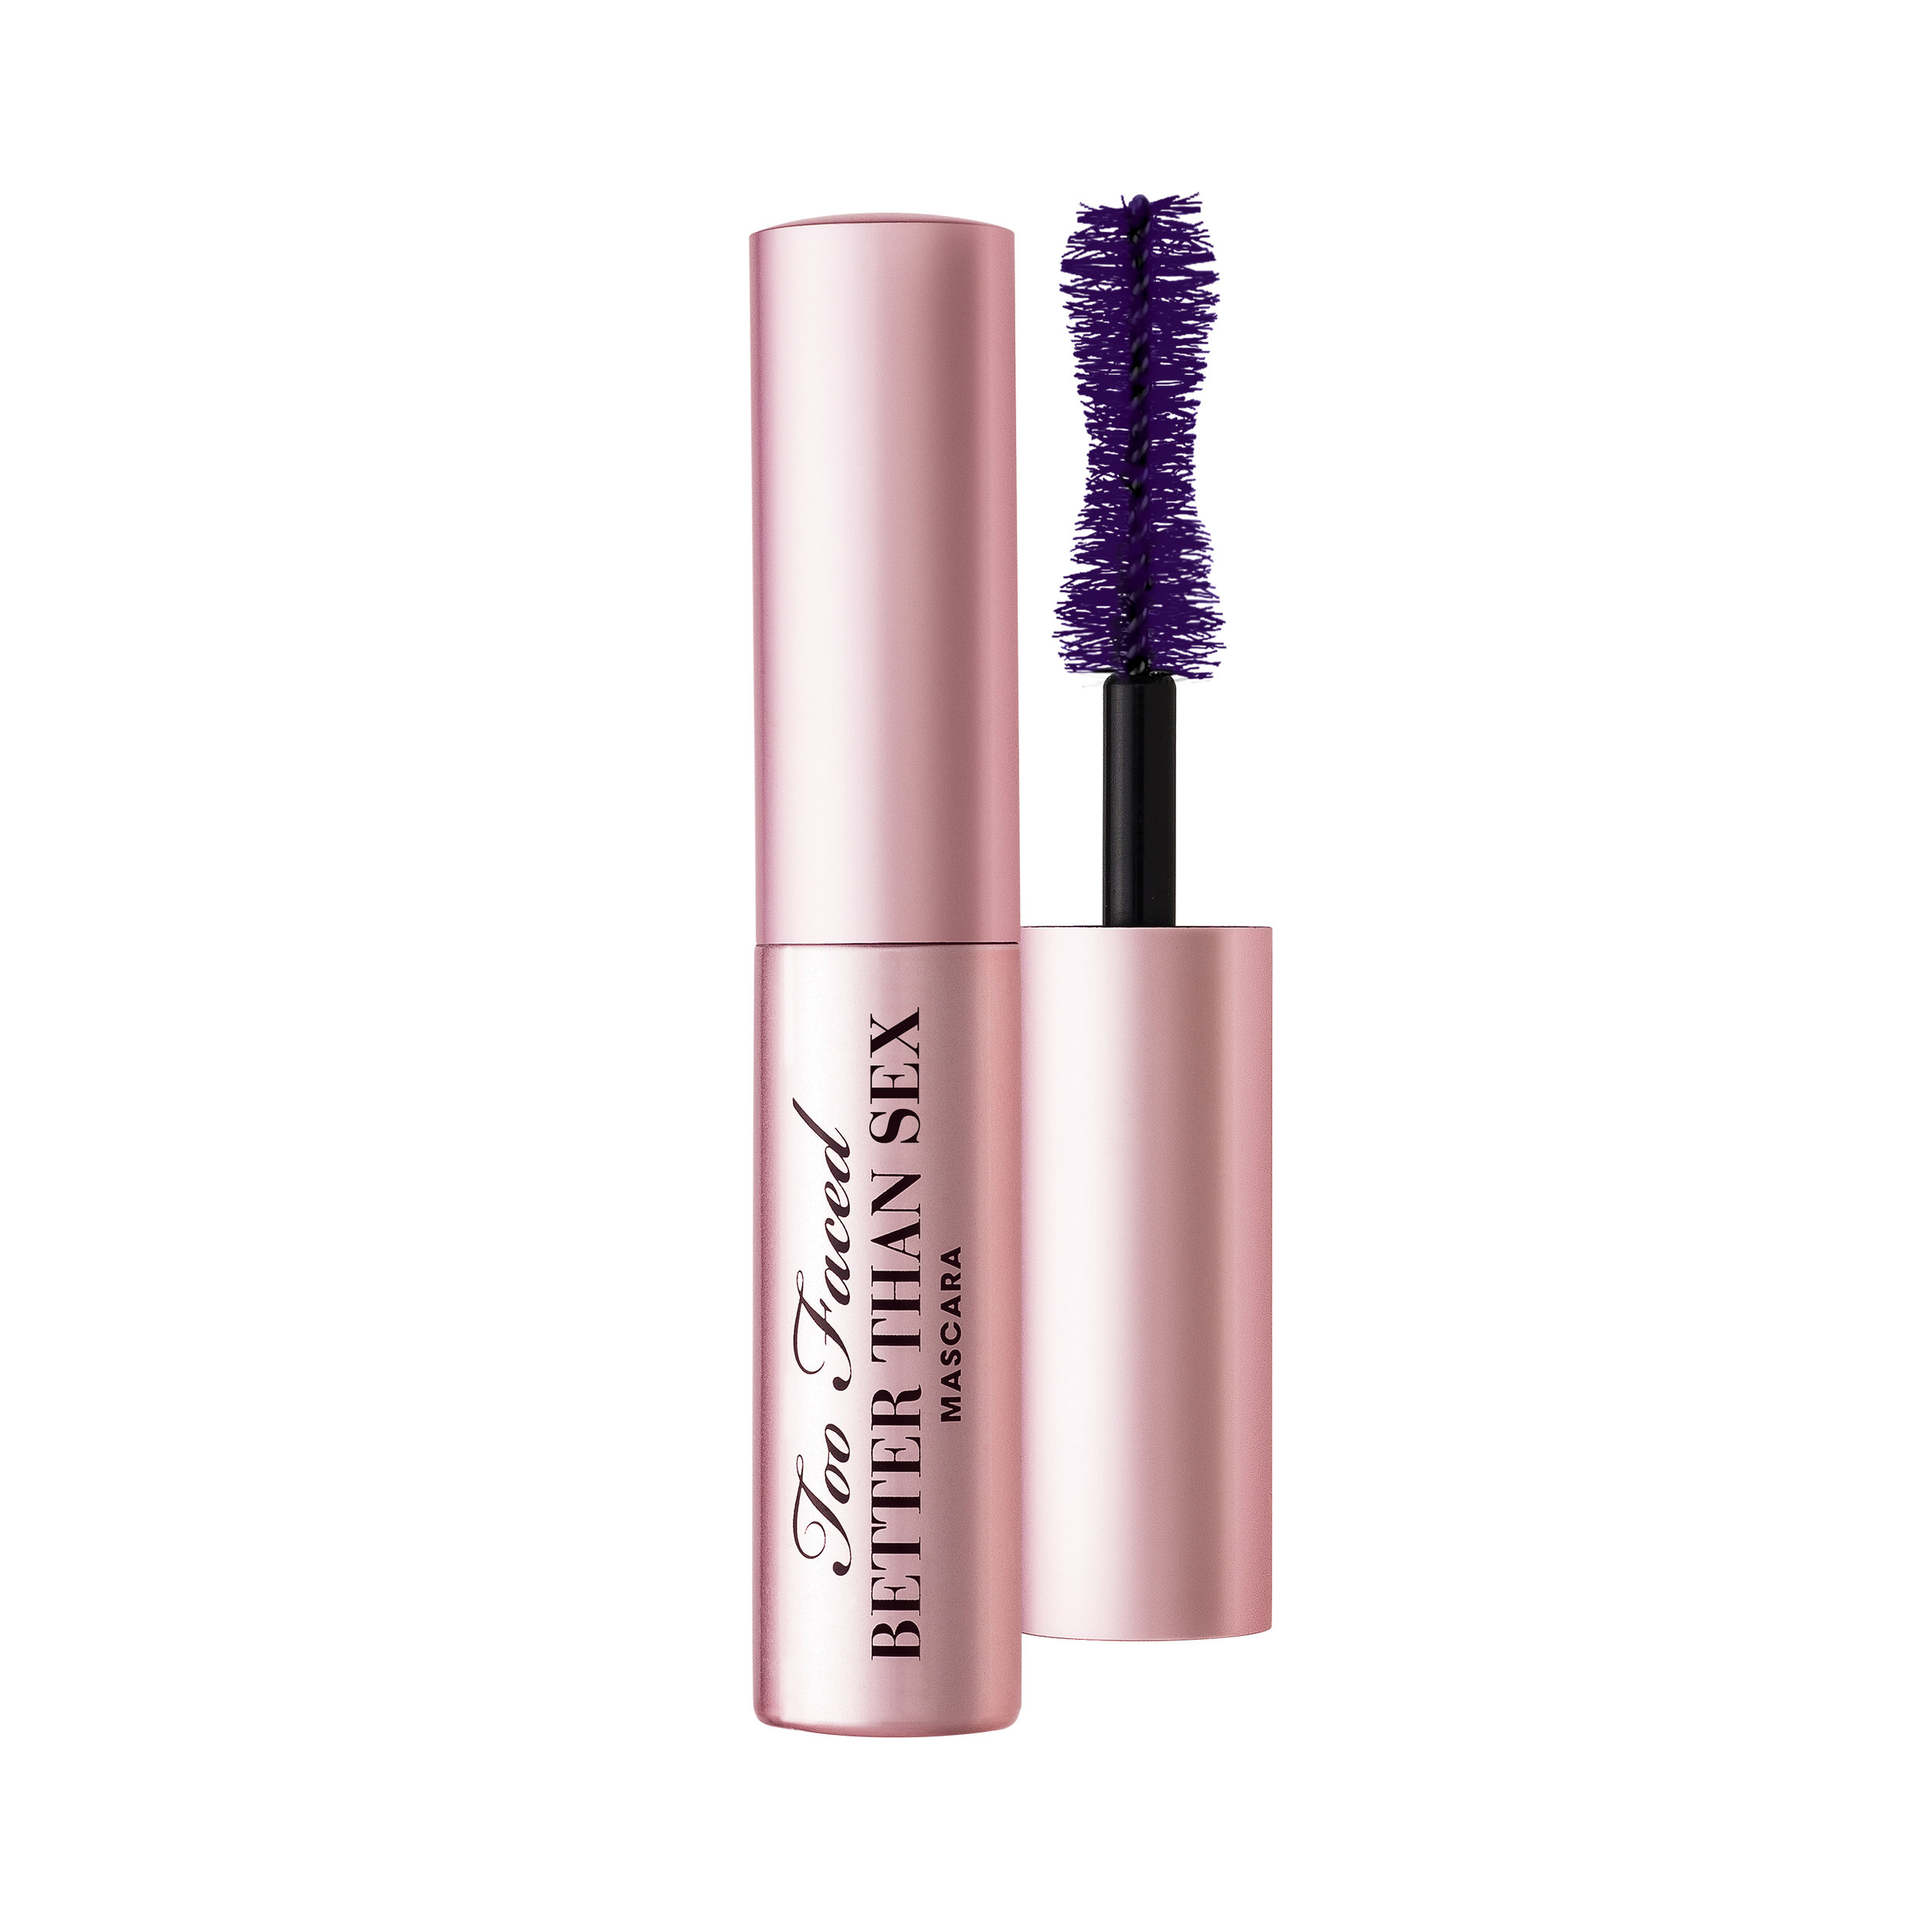 Too Faced  The Power Of Makeup By Nikkie Tutorials Better Than Sex Mascara  (the collection is $56)